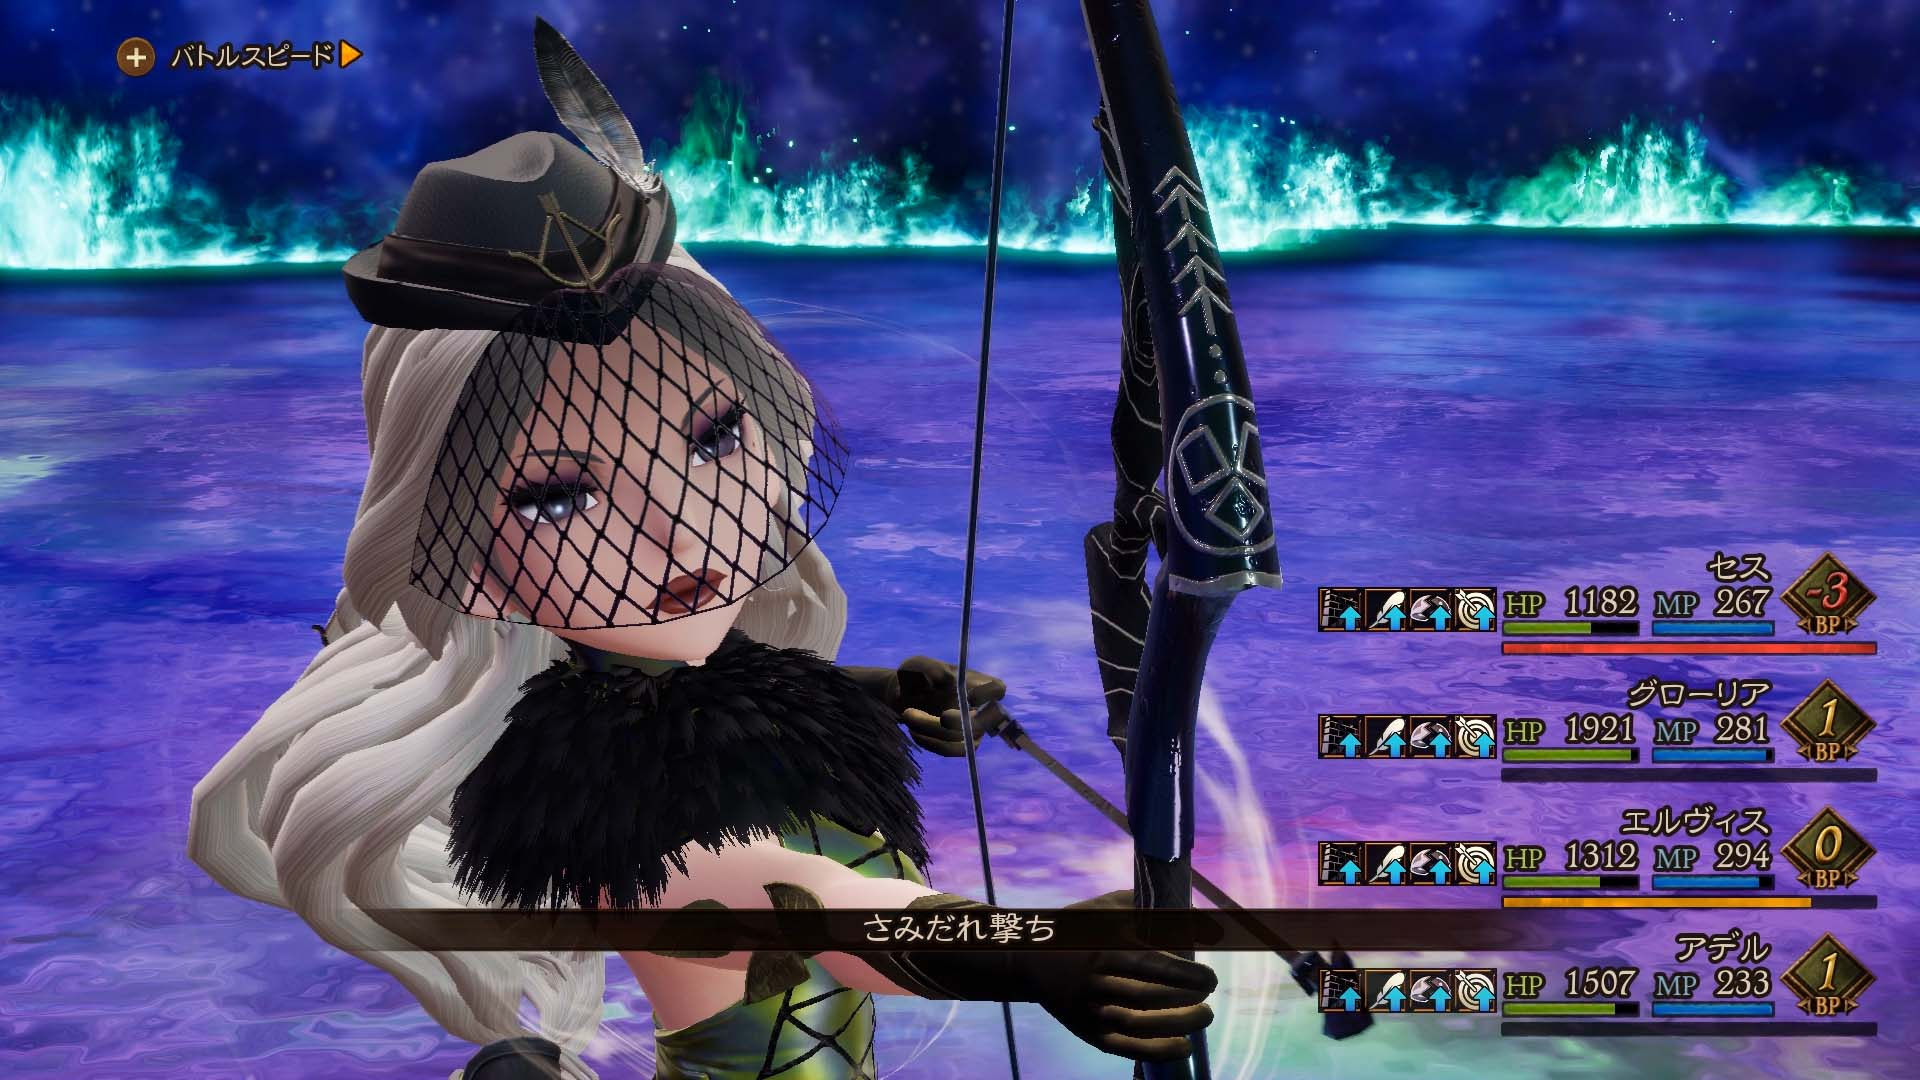 Bravely Default II Will get New Trailer Introducing Wiswald's Characters & Their Jobs 1